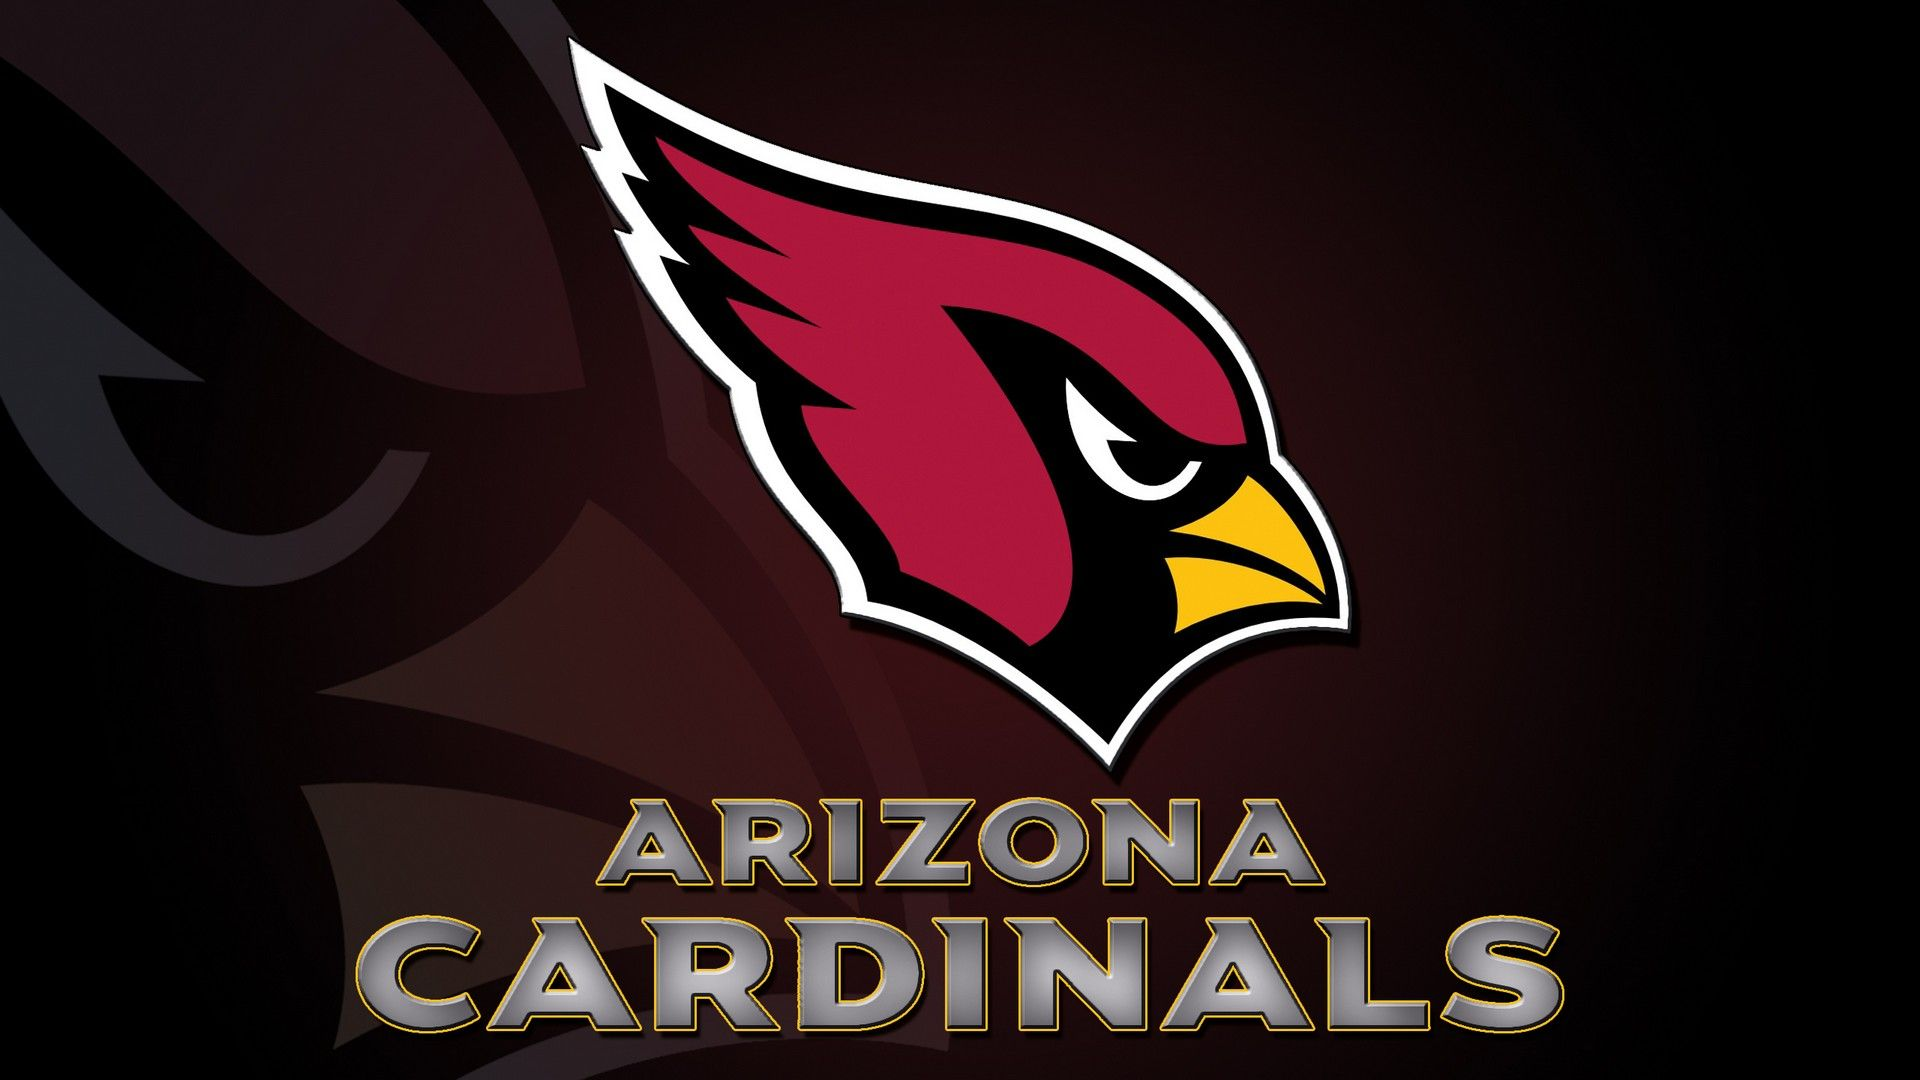 Arizona Cardinals Fan Buy Your Tickets Now From Golden Tickets Arizona Cardinals Logo Cardinals Wallpaper Arizona Cardinals